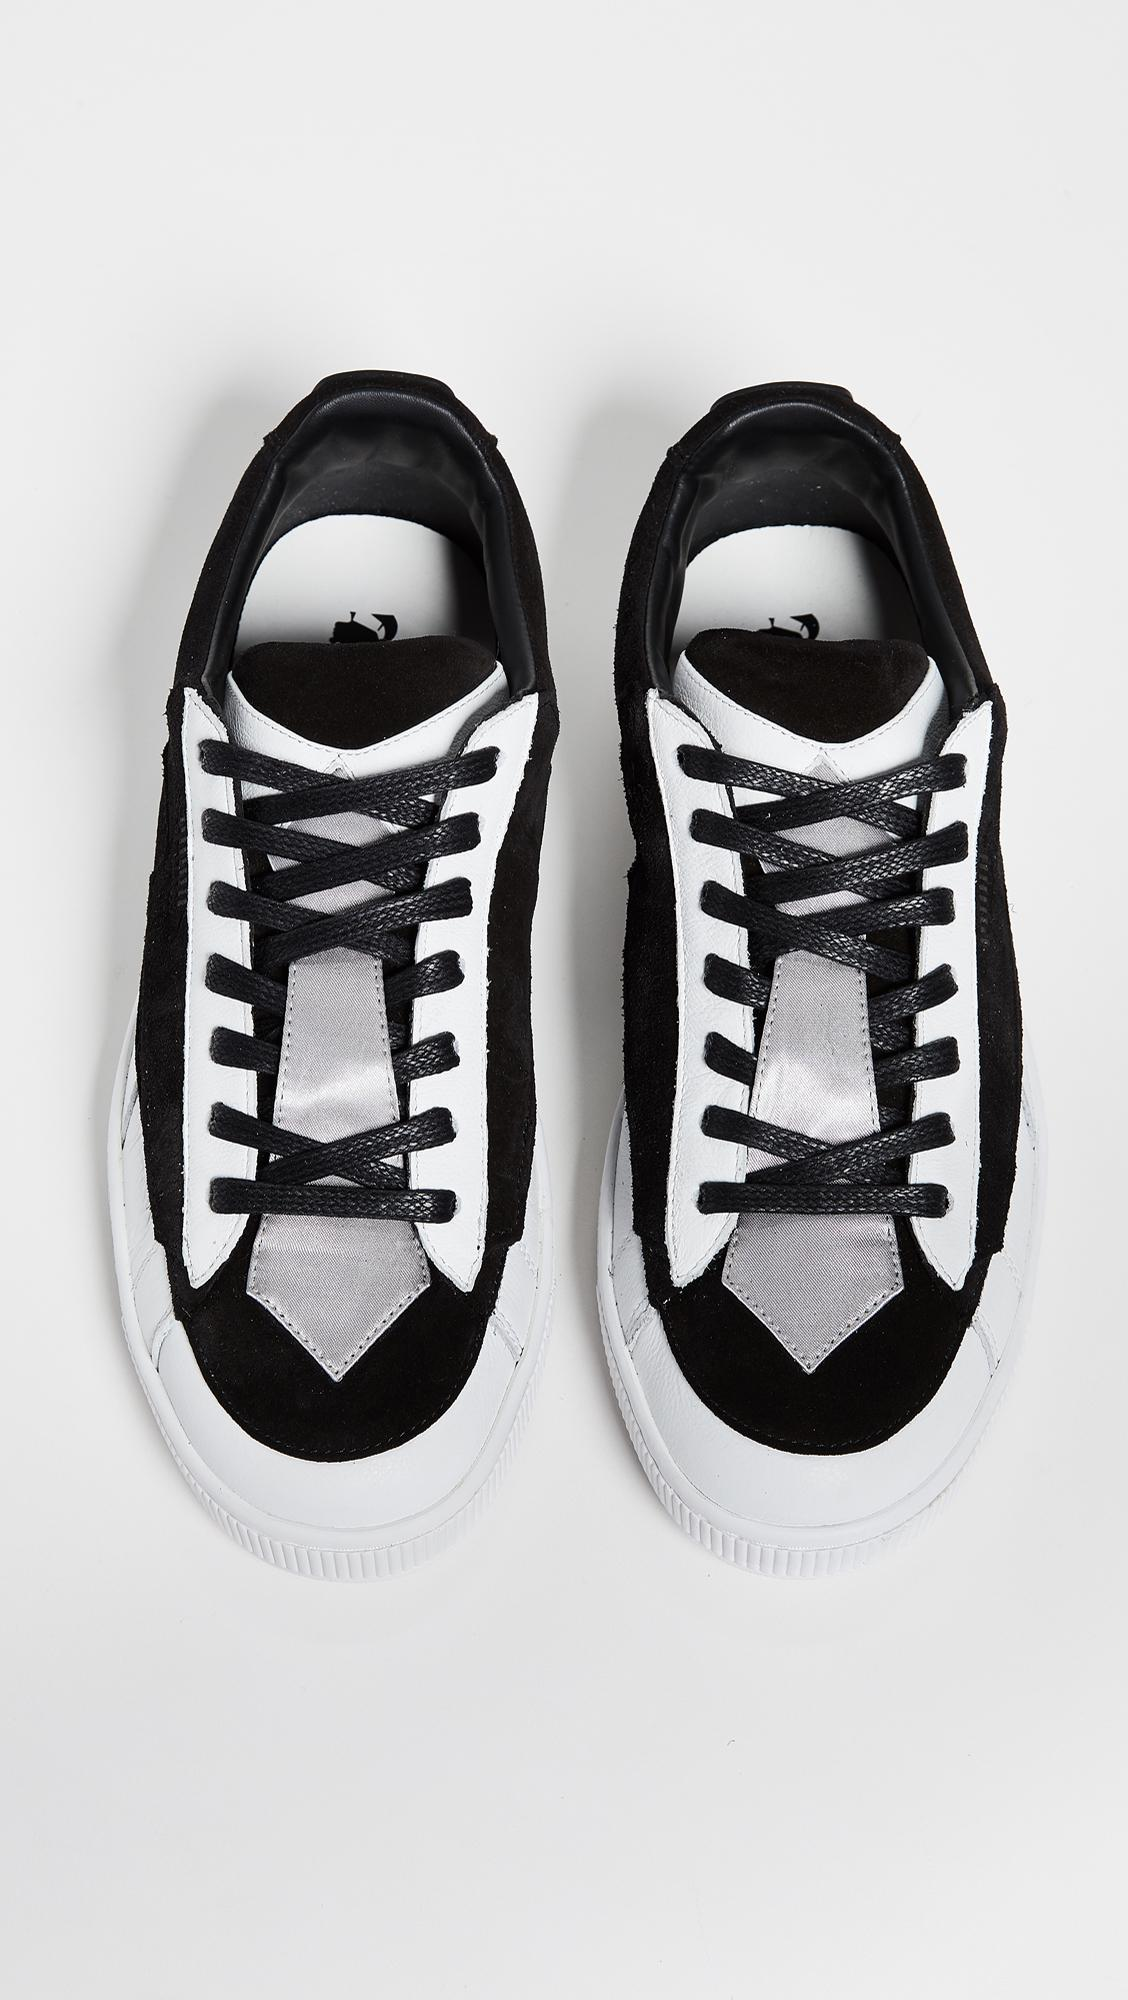 d17d23c817b Lyst - Puma Select X Karl Lagerfeld 2 Suede Classic Sneakers in ...